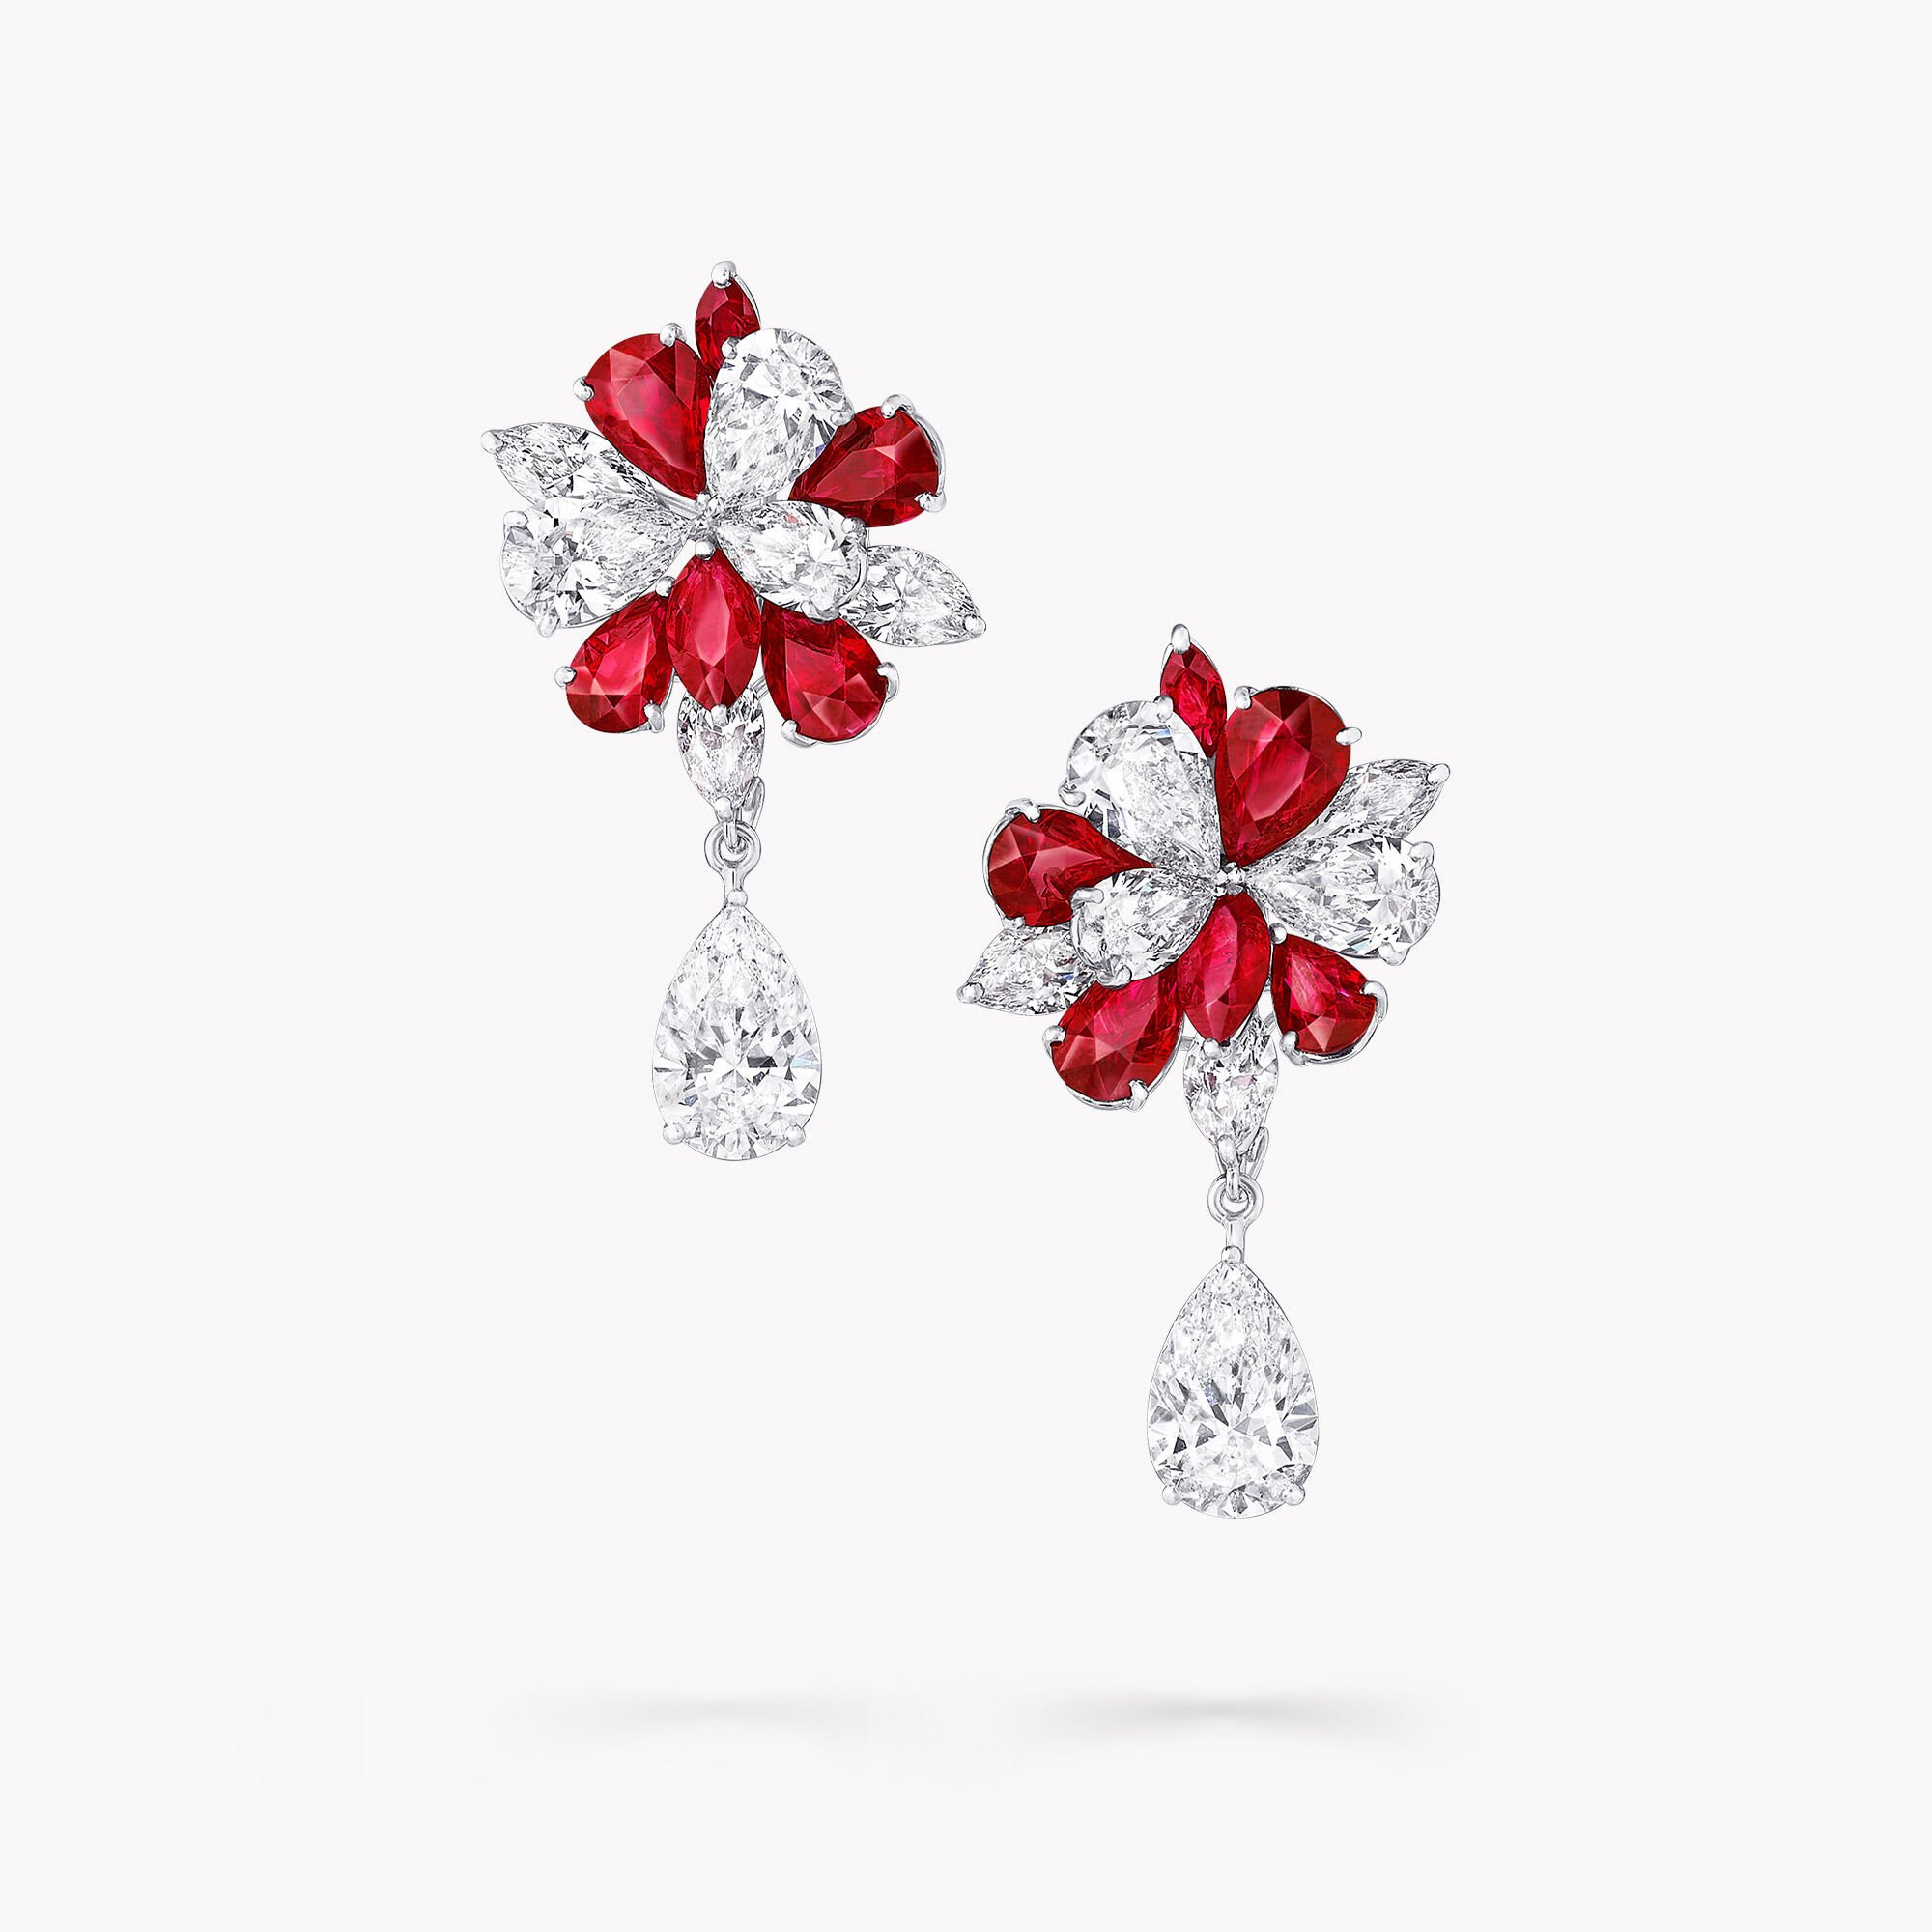 A pair of Graff ruby and white diamond high jewellery earrings